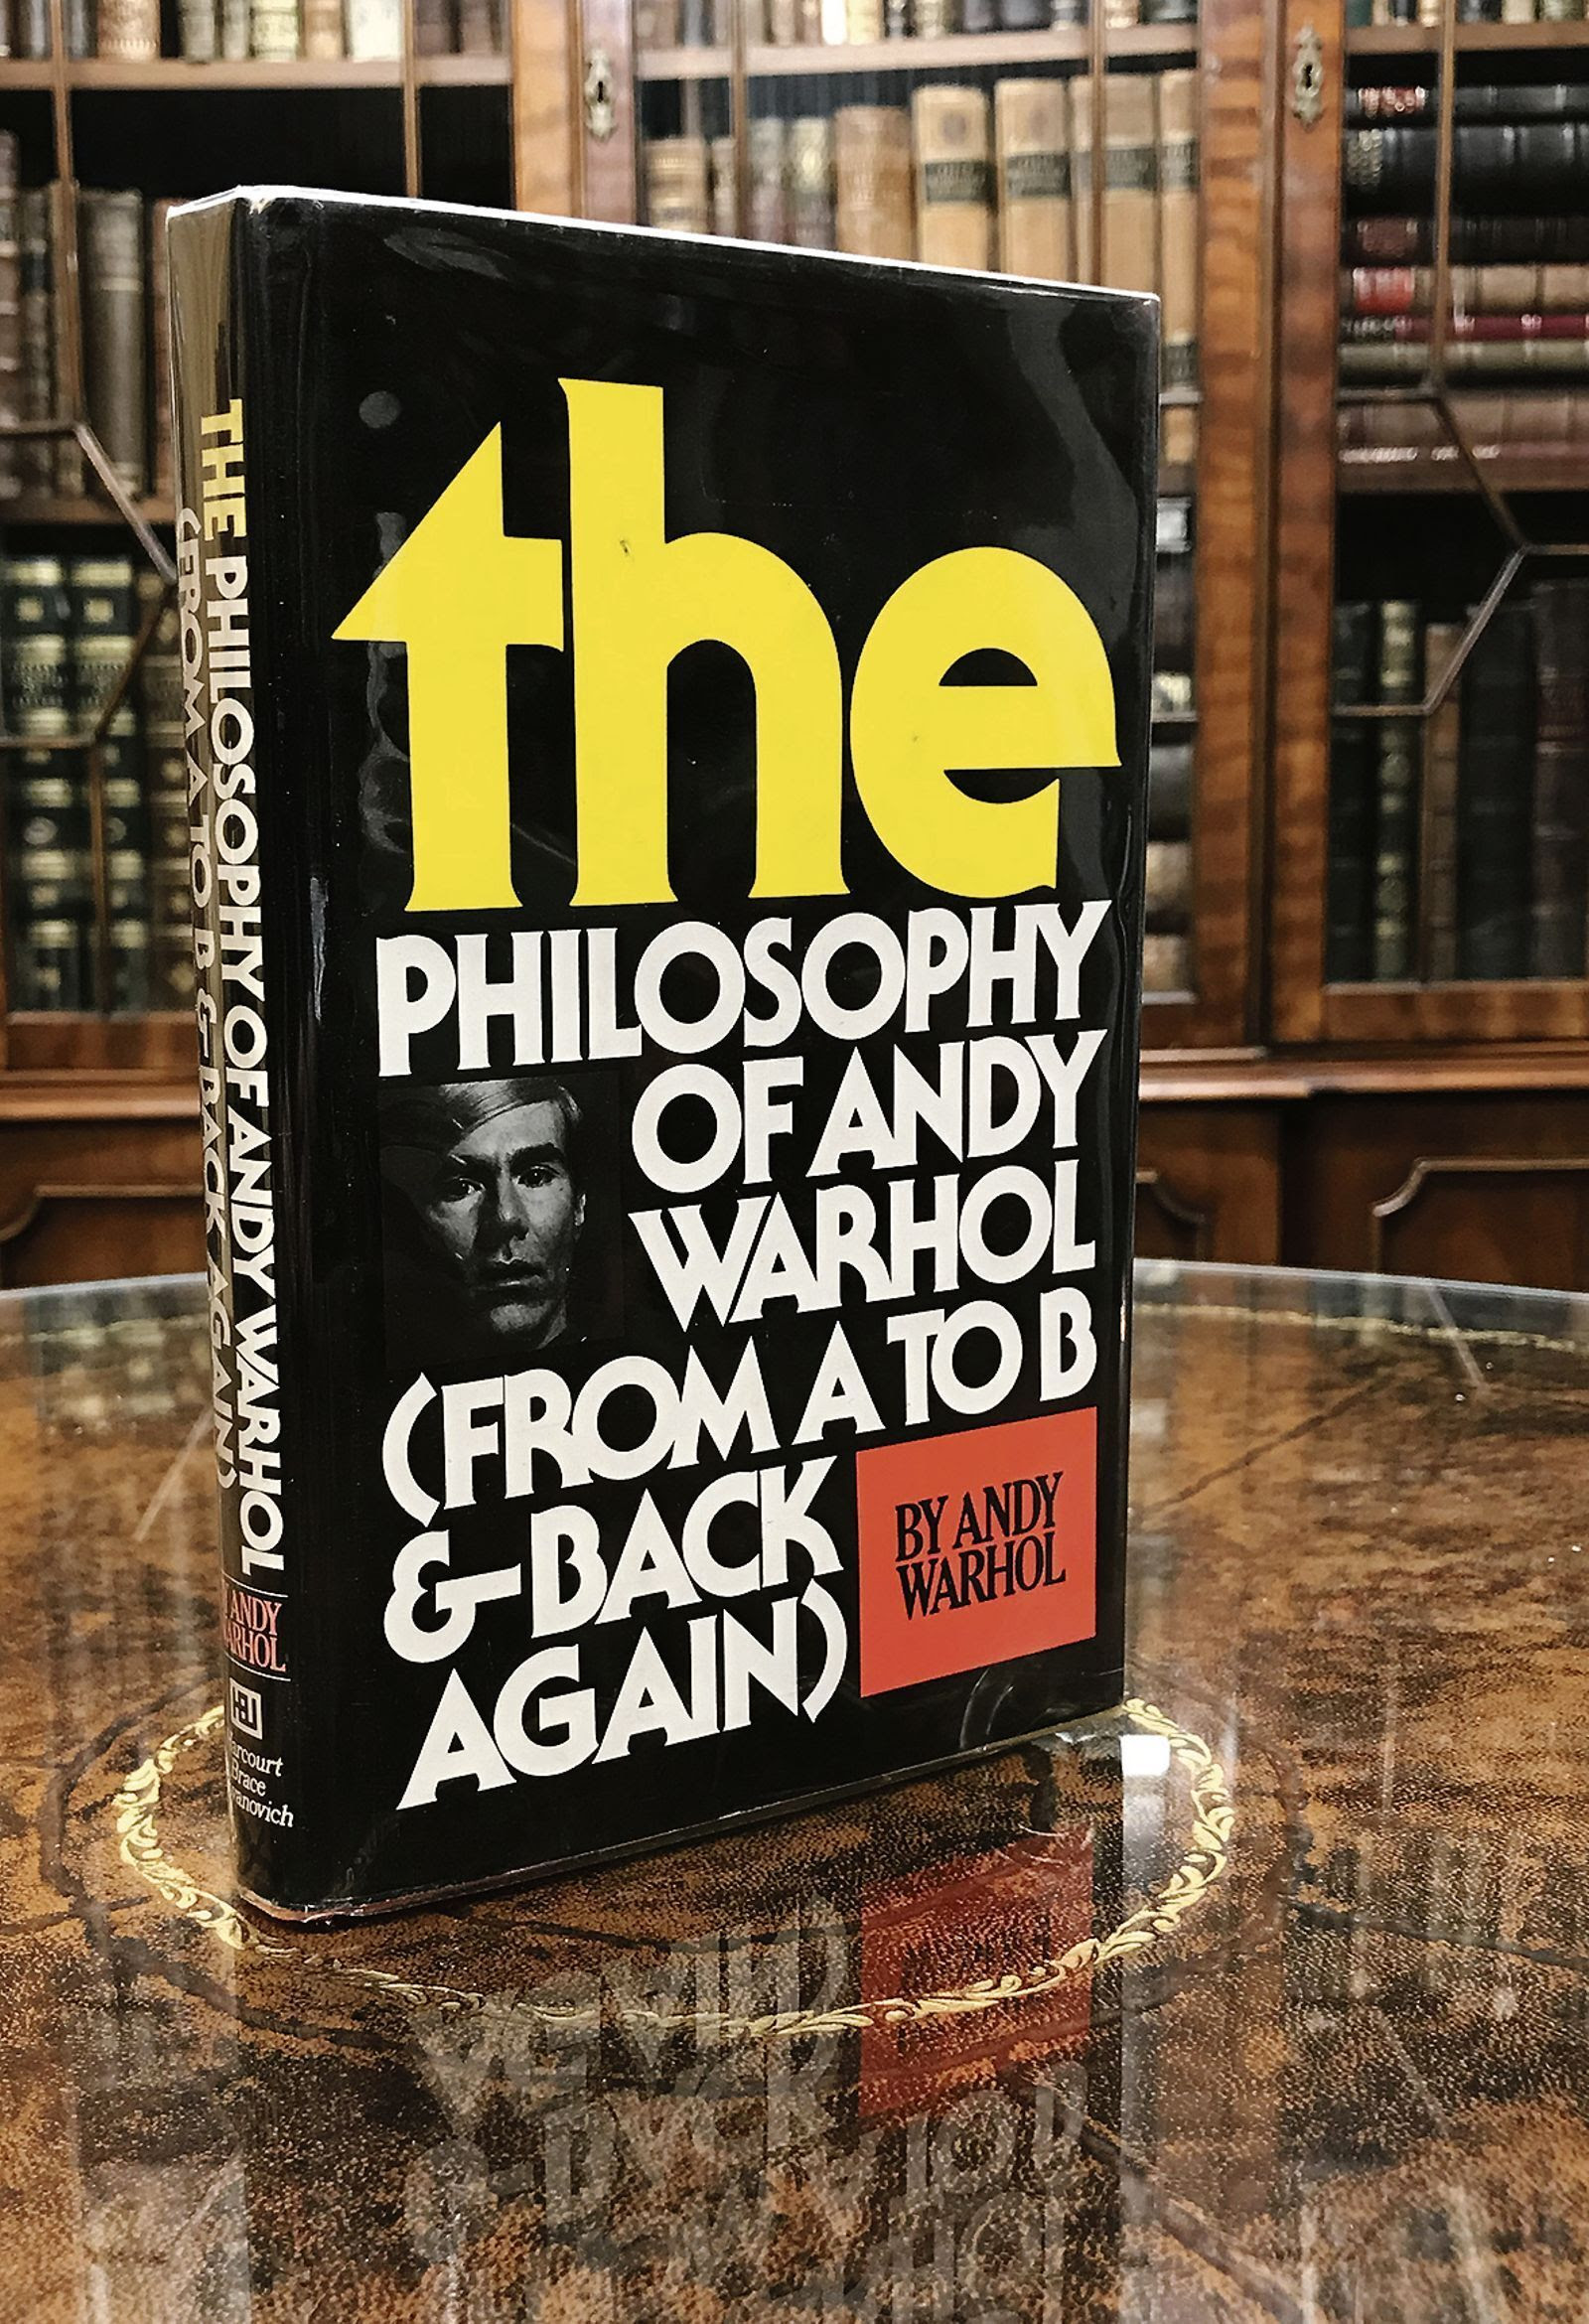 A signed copy of The Philosopy of Andy Warhol